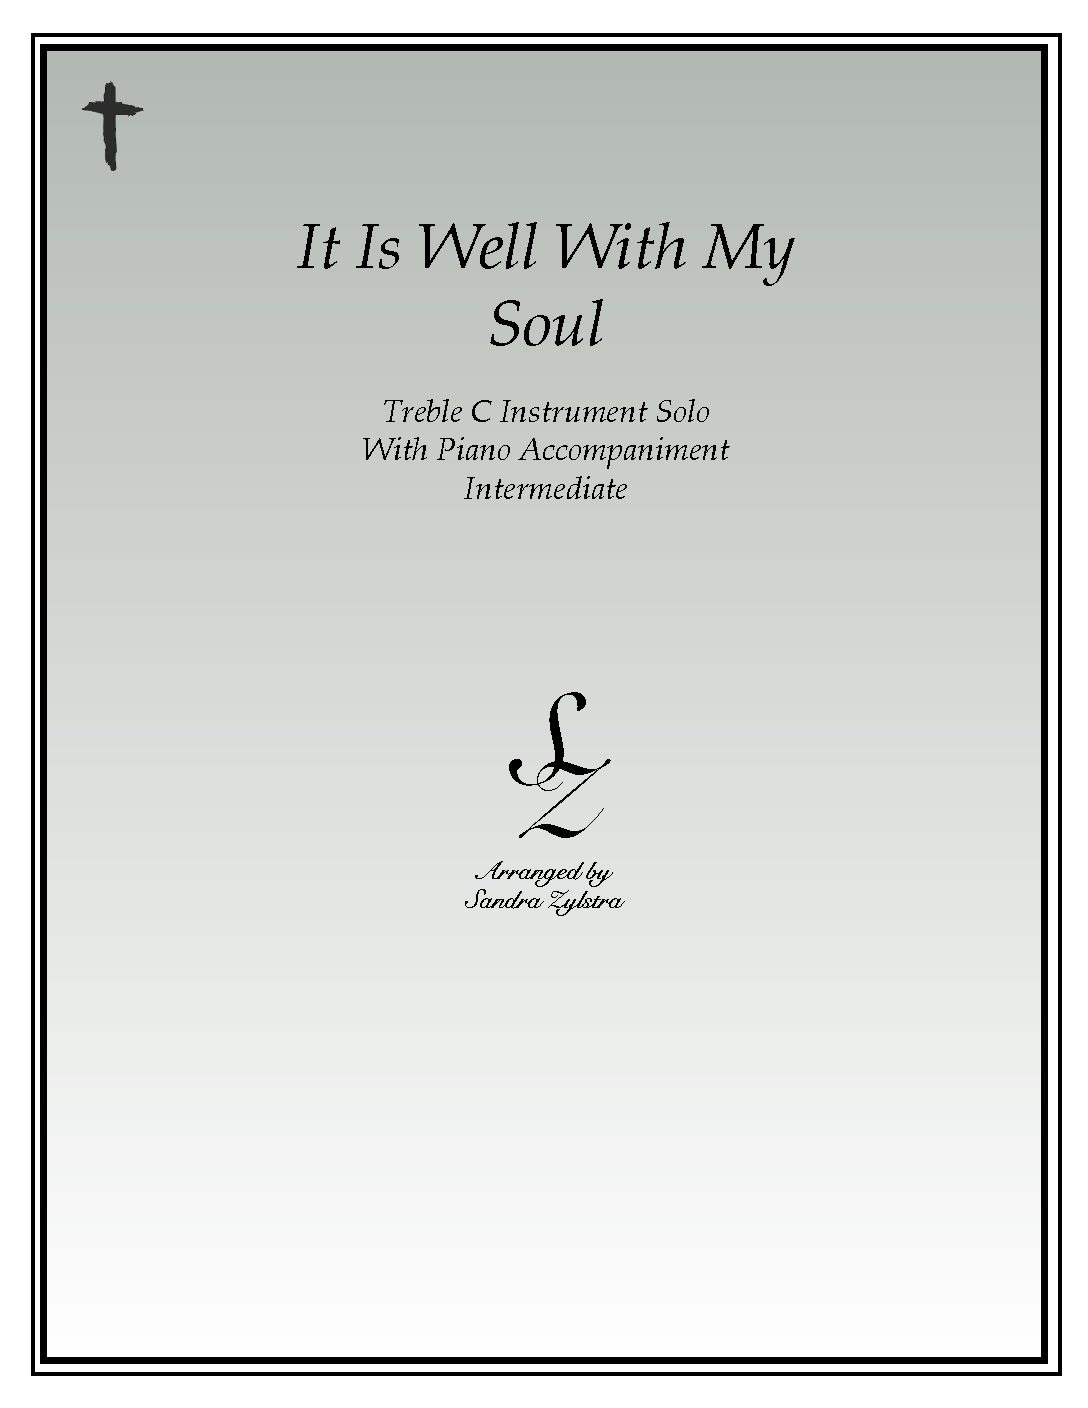 It Is Well With My Soul -Treble C Instrument Solo